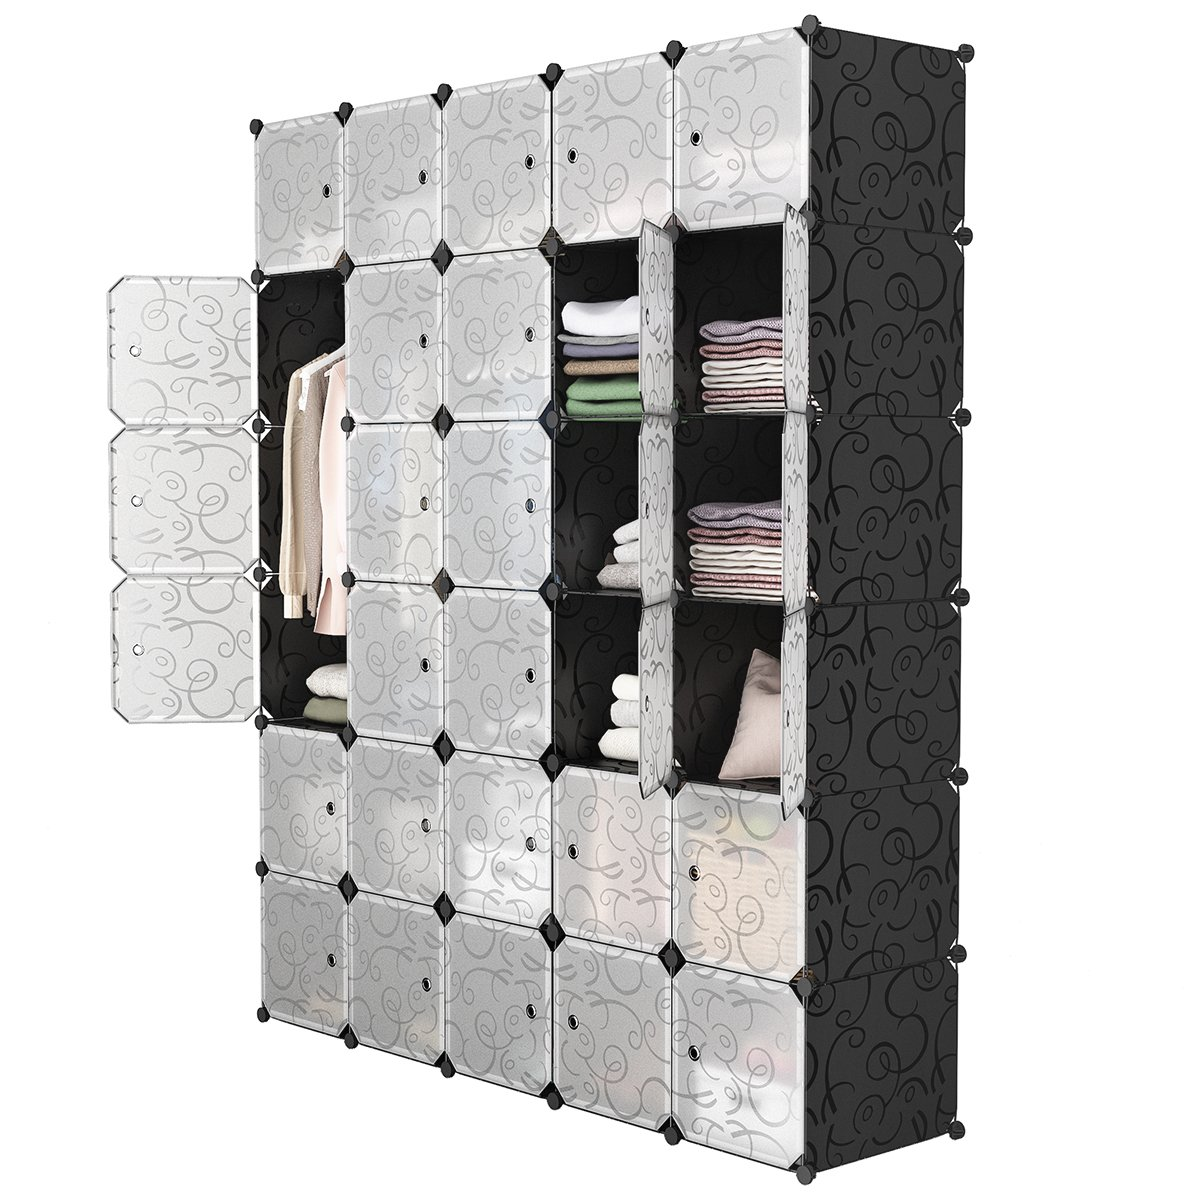 LANGRIA 30-Cube DIY Modular Shelving Storage Organizer Extra Large Wardrobe with Clothes Rod, Furniture for Clothes (Patterned Black)